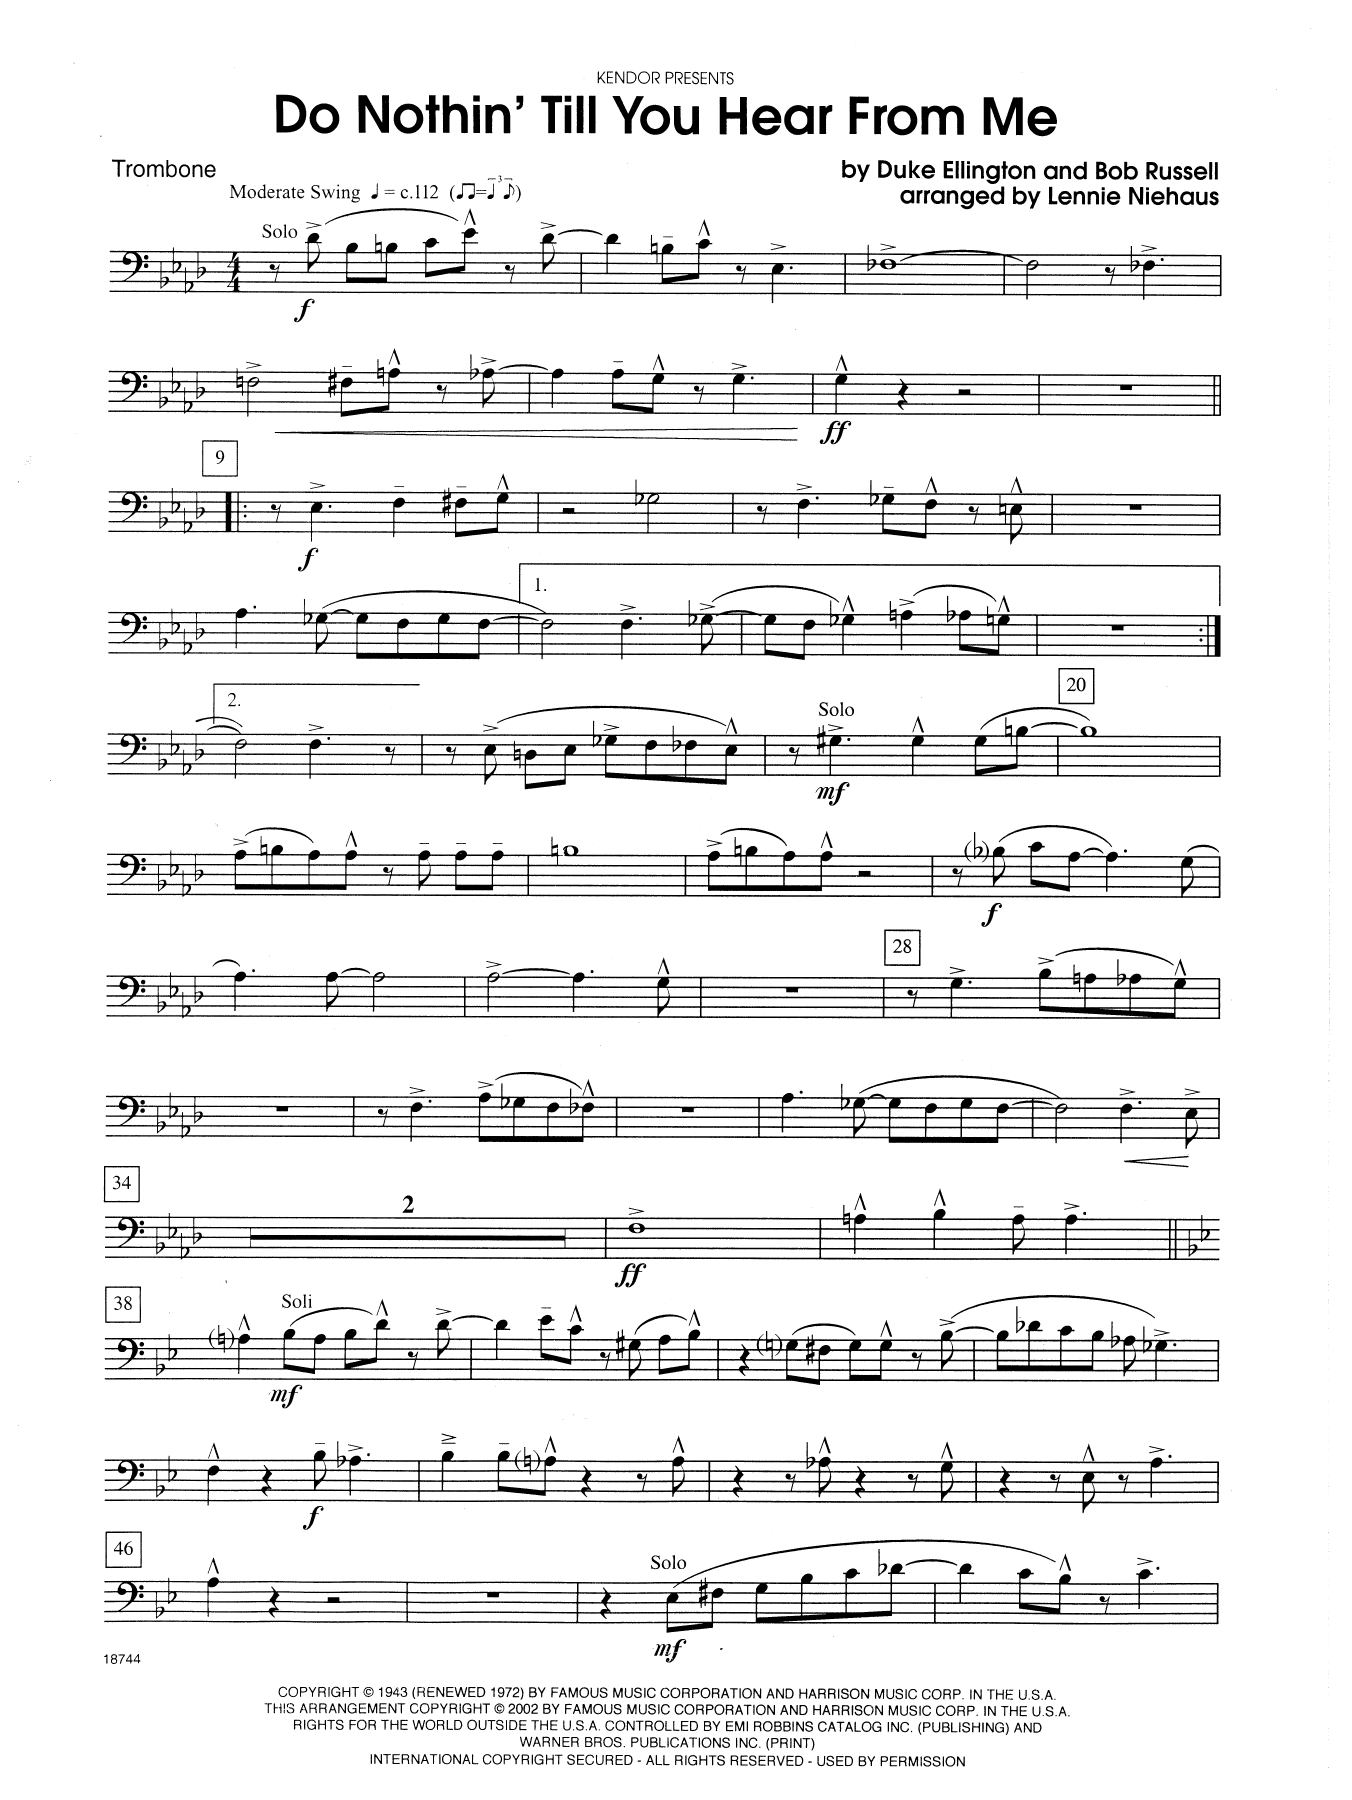 Do Nothin' Till You Hear from Me - Trombone Sheet Music